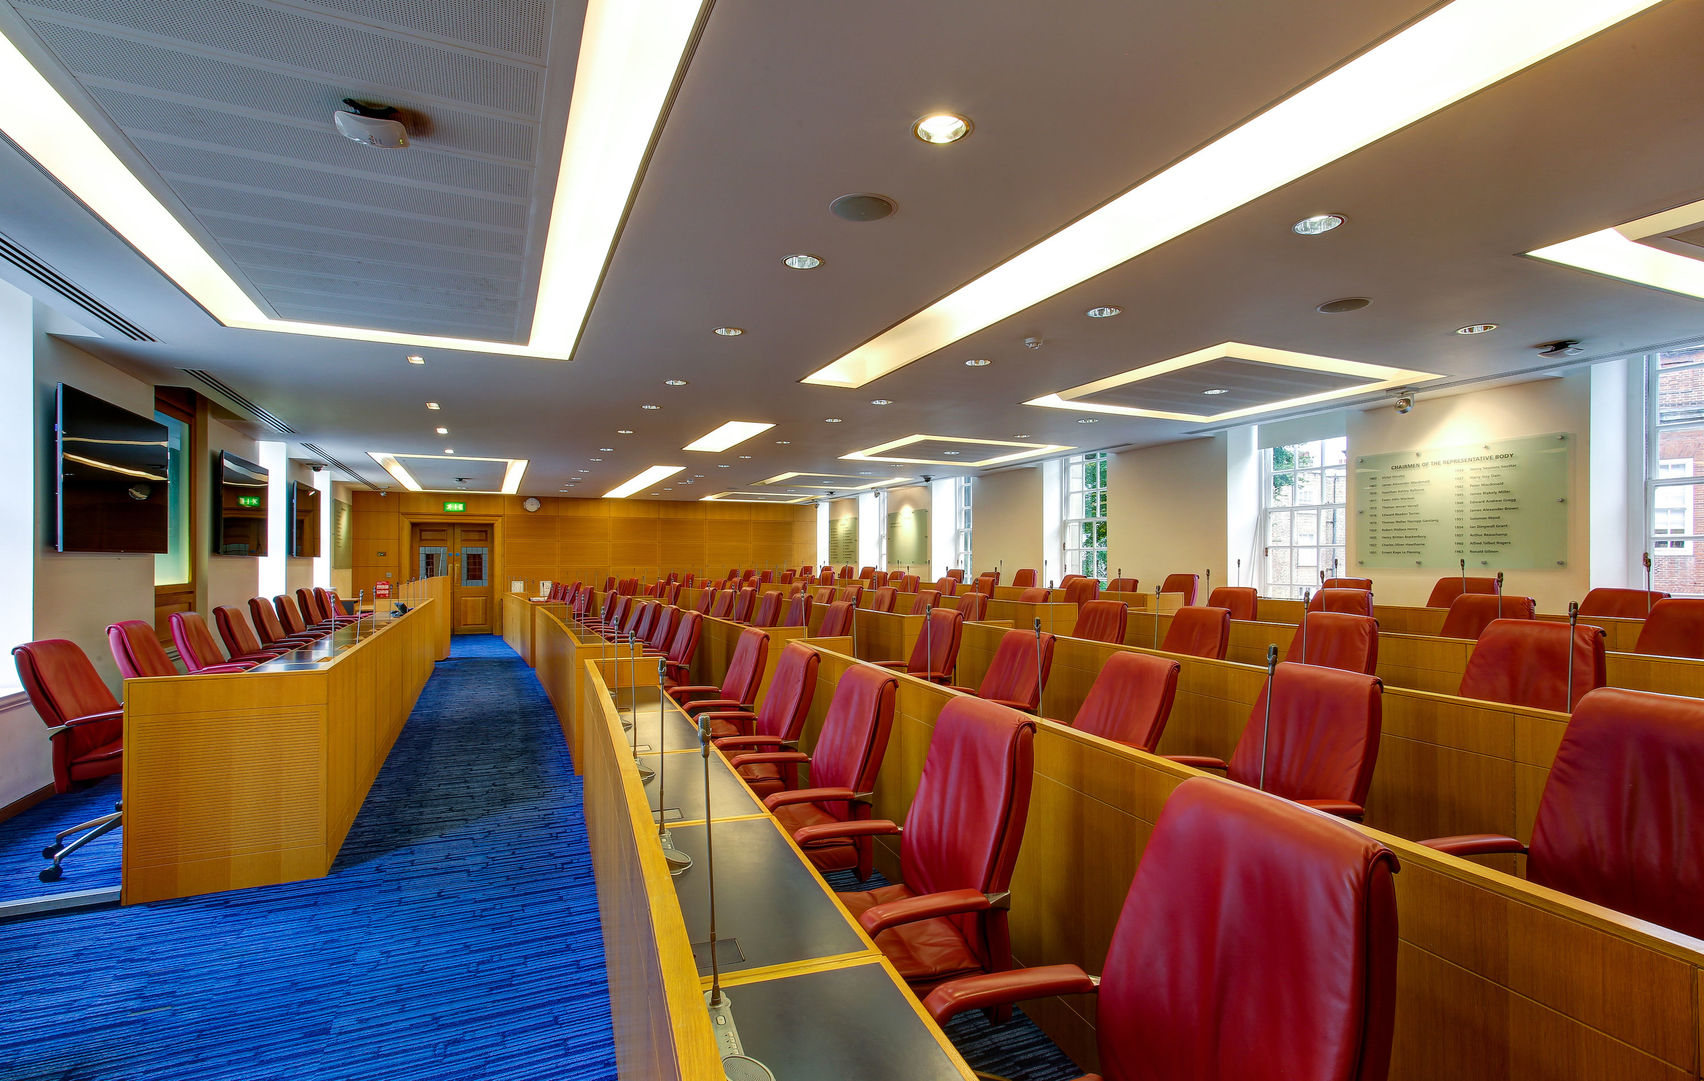 Council Chamber, BMA House